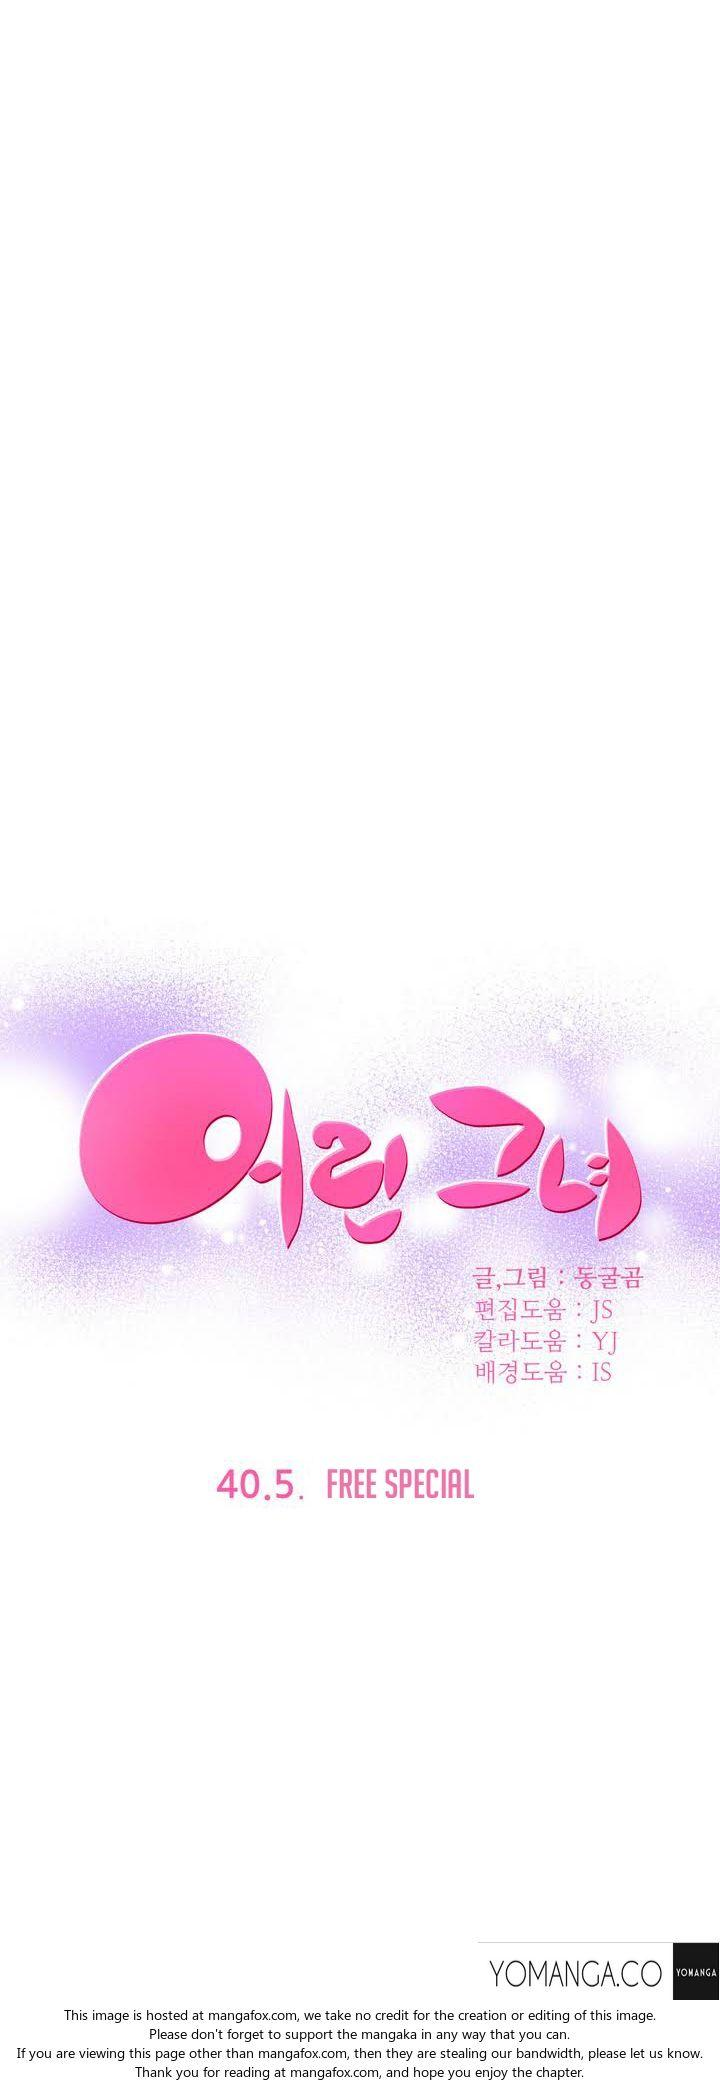 [Donggul Gom] She is Young (English) Part 1/2 756